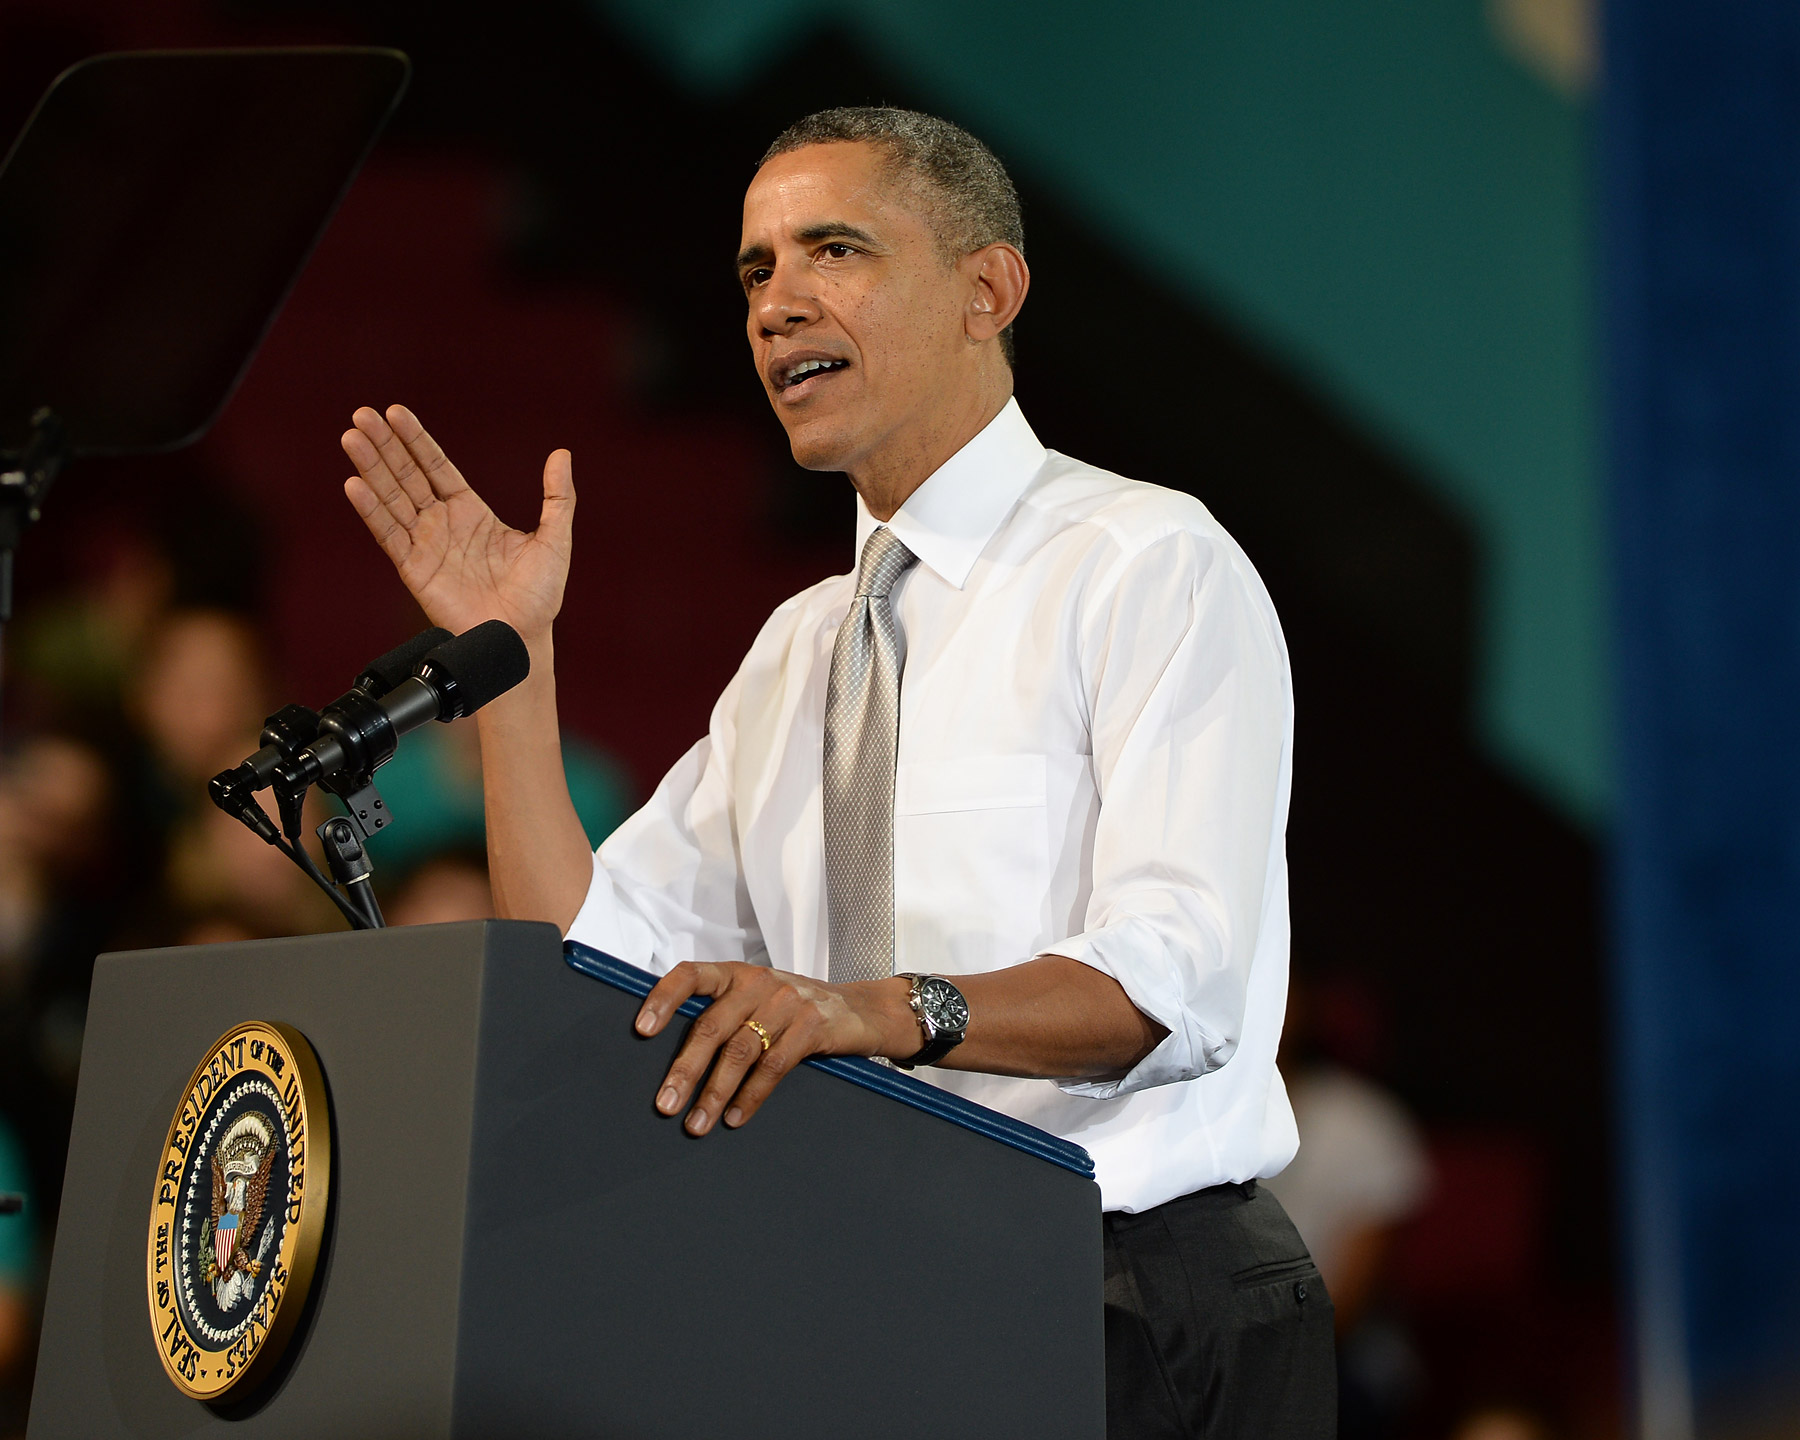 President Barack Obama delivers a speech at Coral Reef High School in Miami on March 7, 2014